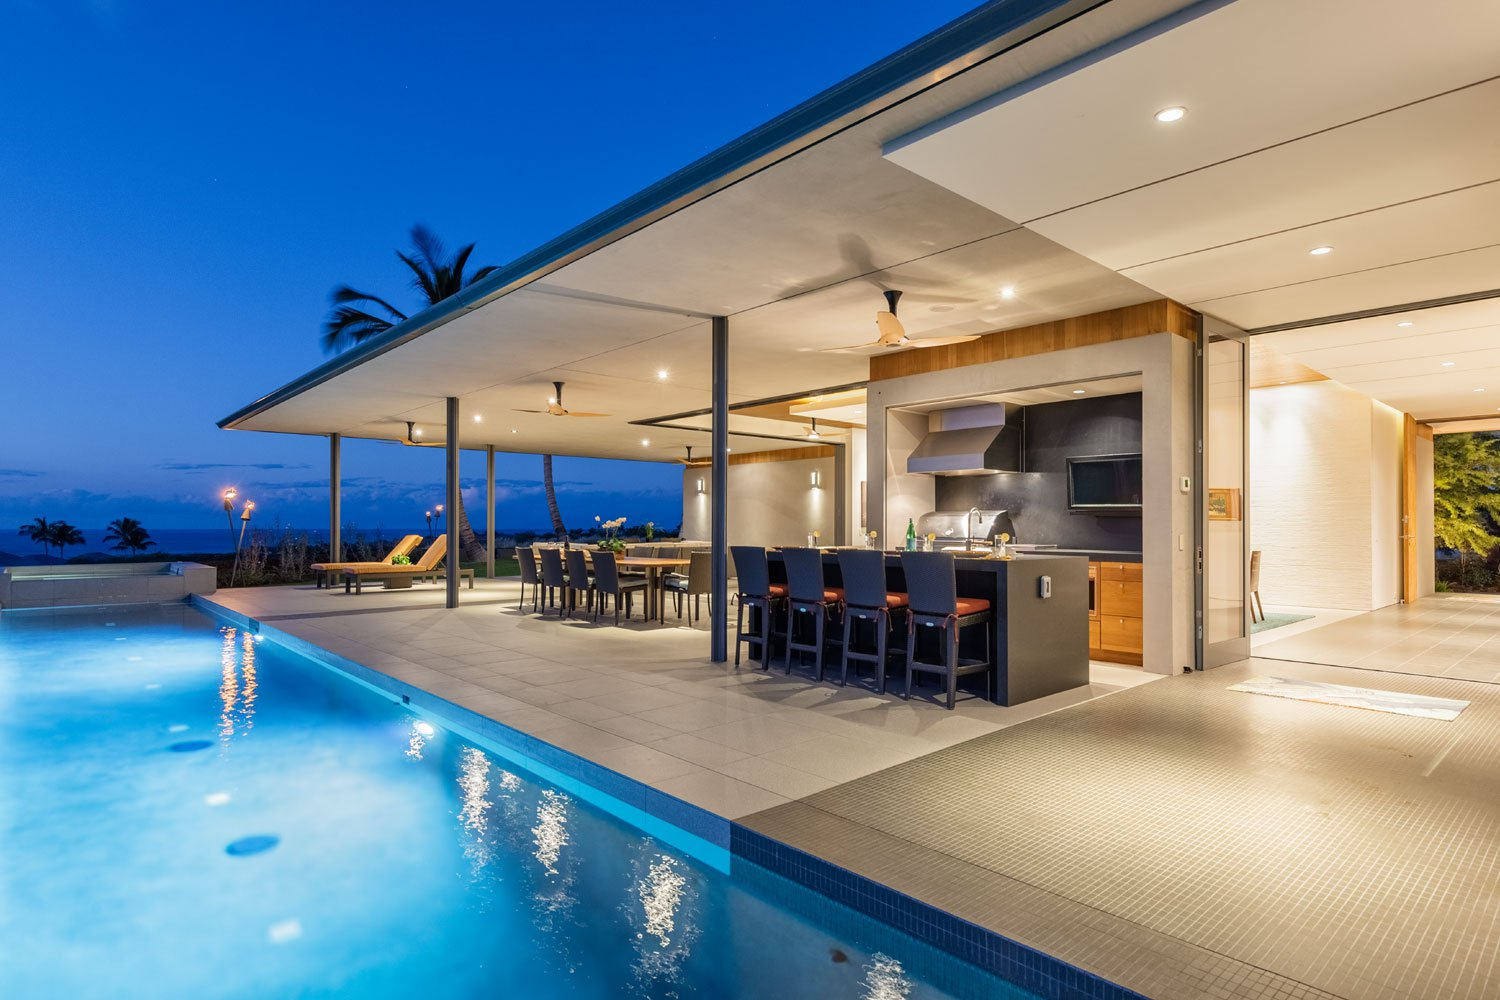 Constructed on a large estate in the Maniniowali community of Kukio on the Big Island of Hawaii, the open design reflects its expansive natural setting seamlessly.